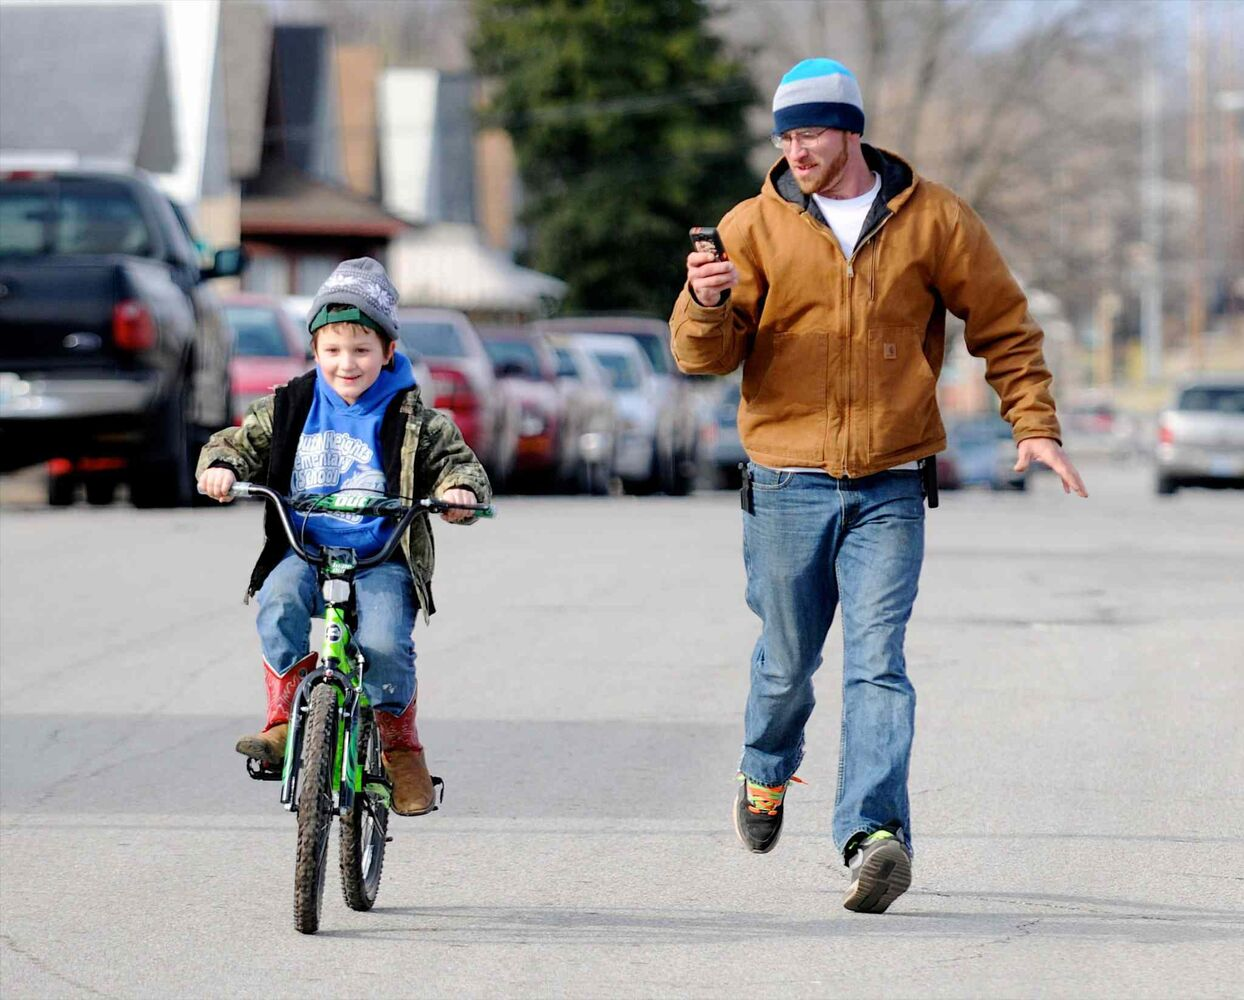 Levi Marez runs alongside his son Kaden Fletcher, 6, left, as he learns to ride the bike he got for Christmas, Wednesday, Dec. 25, 2013, in Henderson, Kentucky.  (The Associated Press)